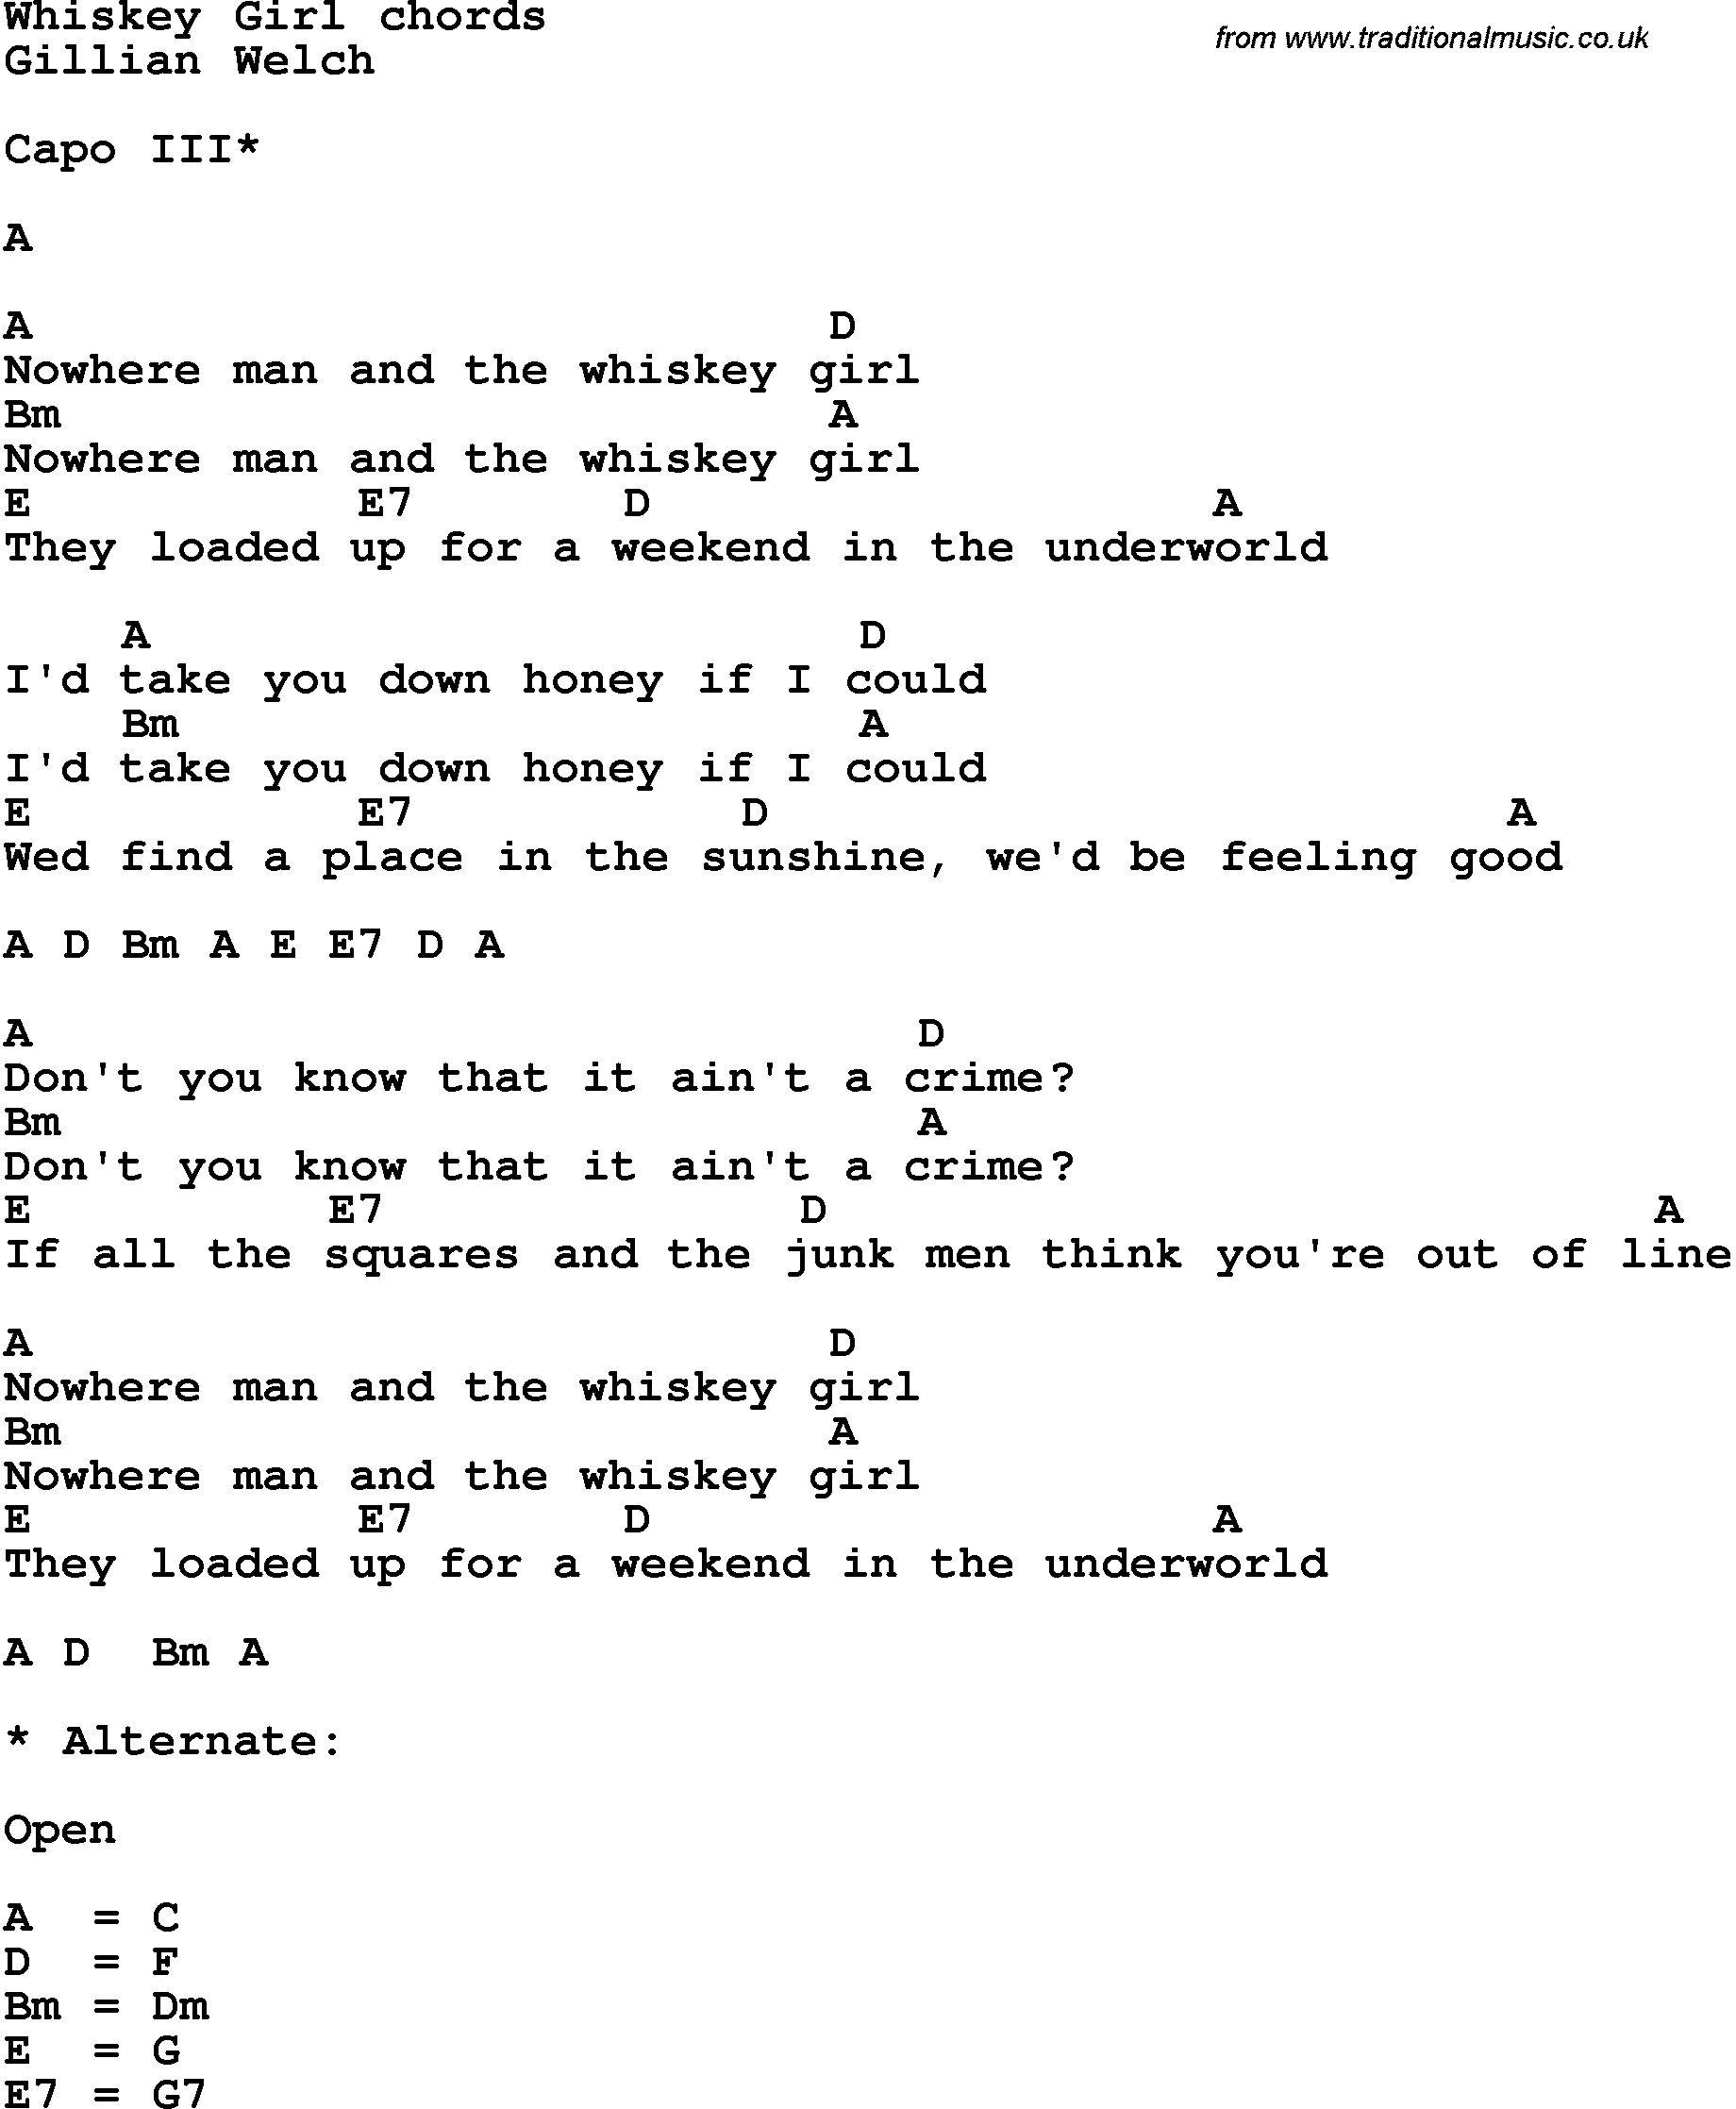 Song Lyrics With Guitar Chords For Whiskey Girl